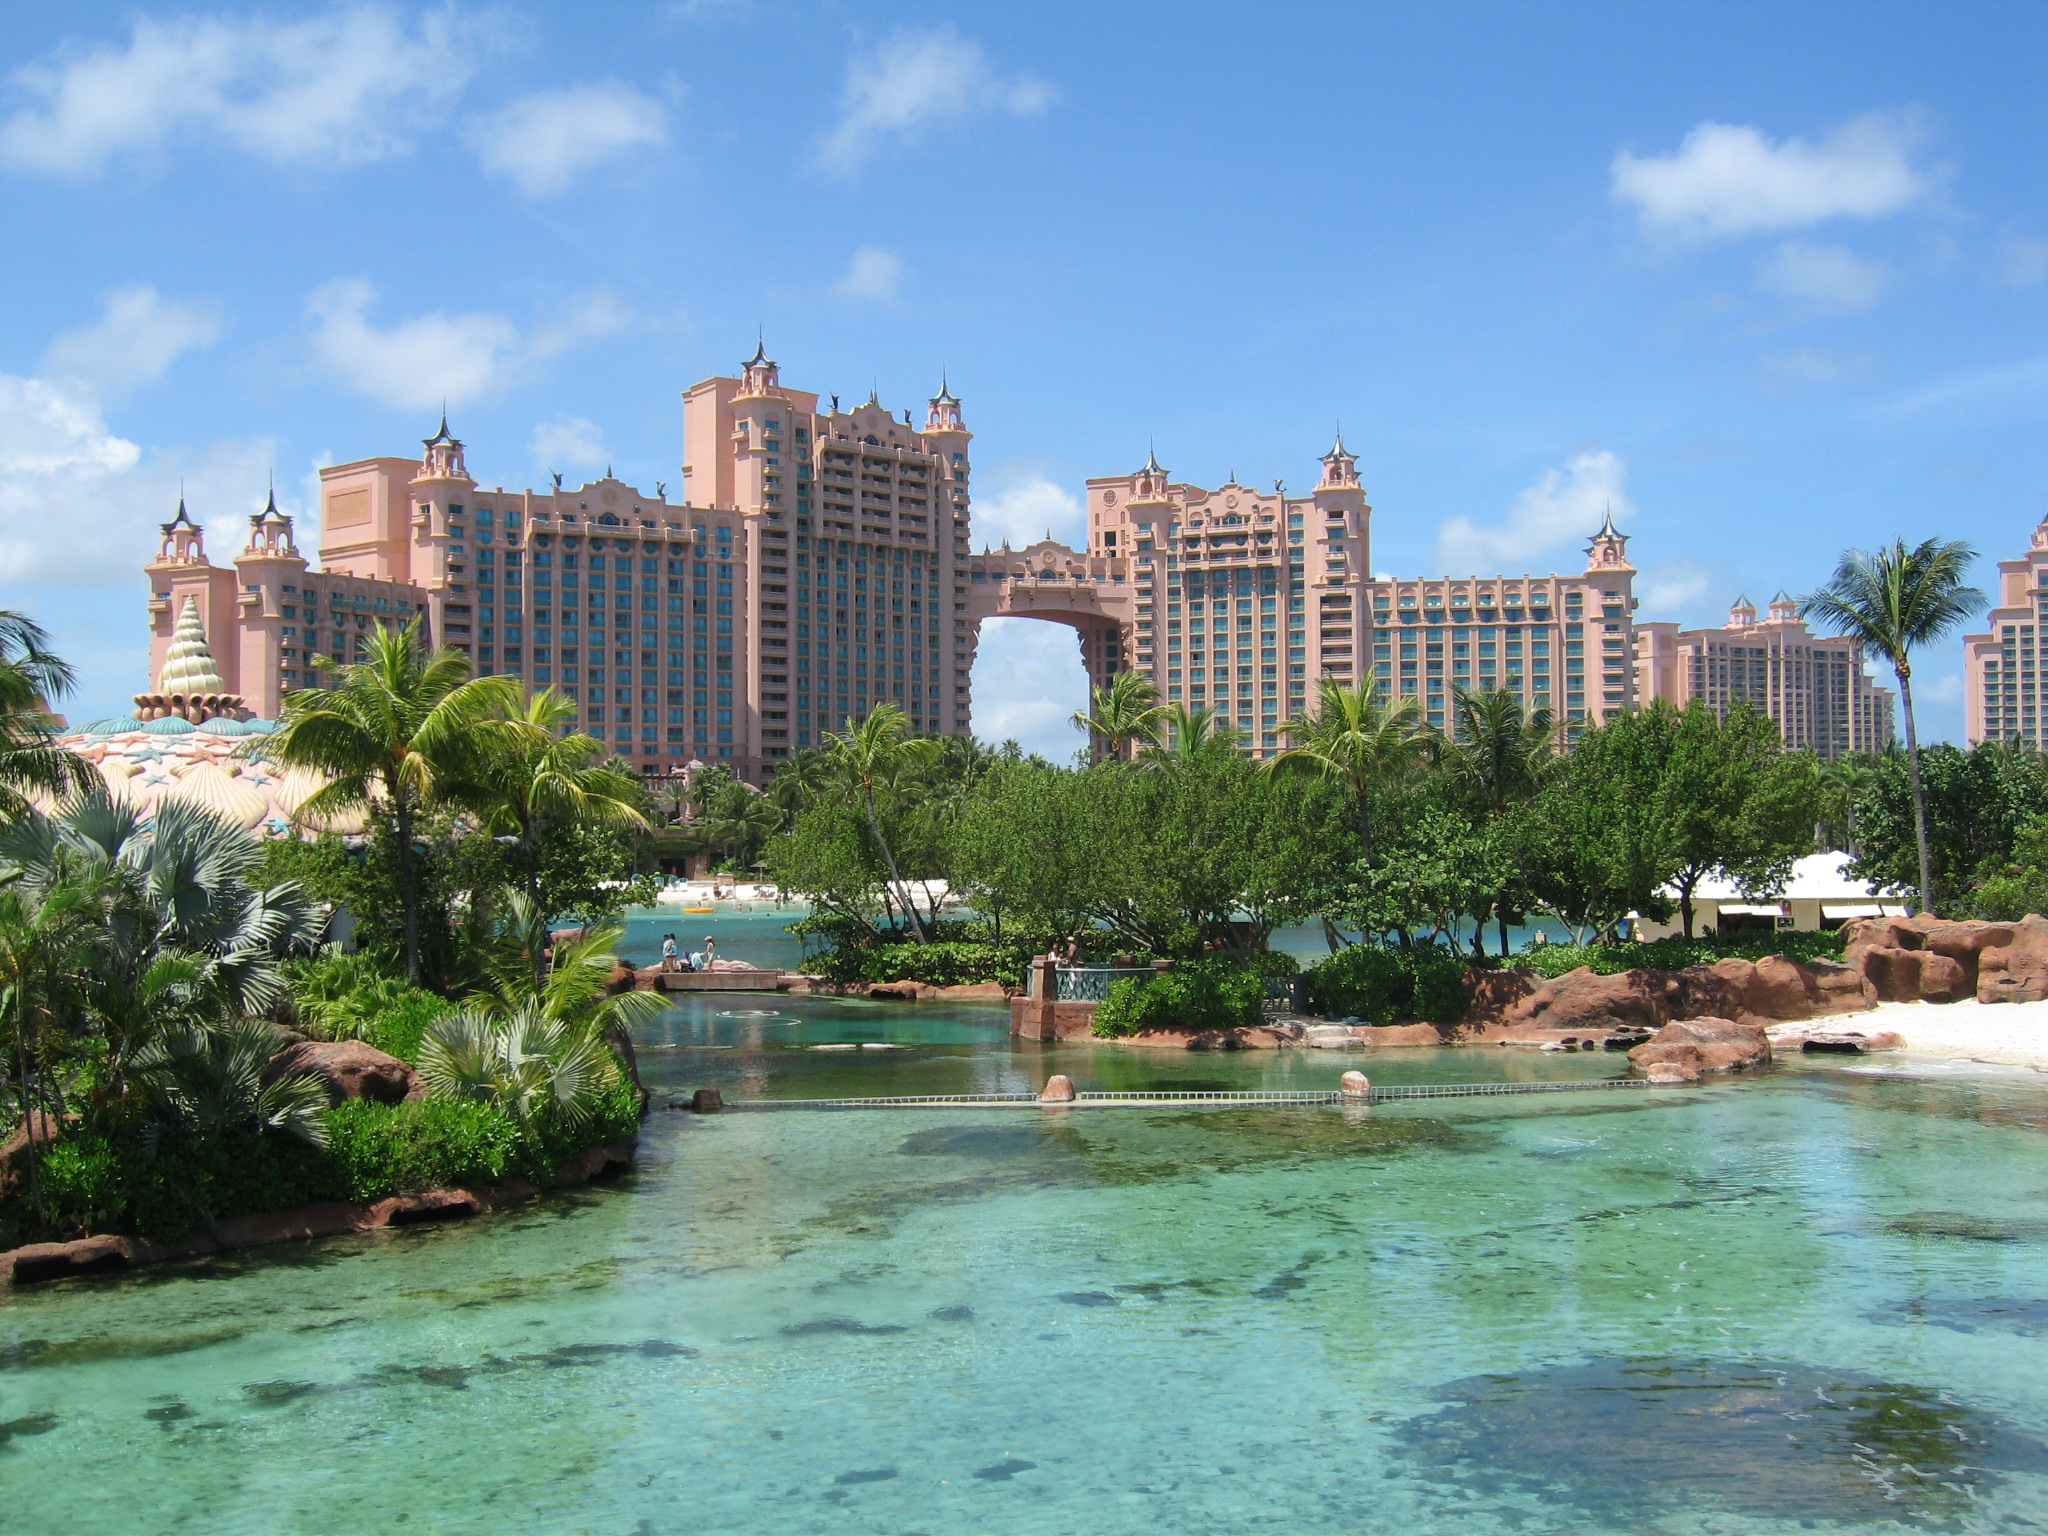 Hotel Atlantis In The Bahamas Top 10 Most Expensive Hotel Suites In The World 2011 The